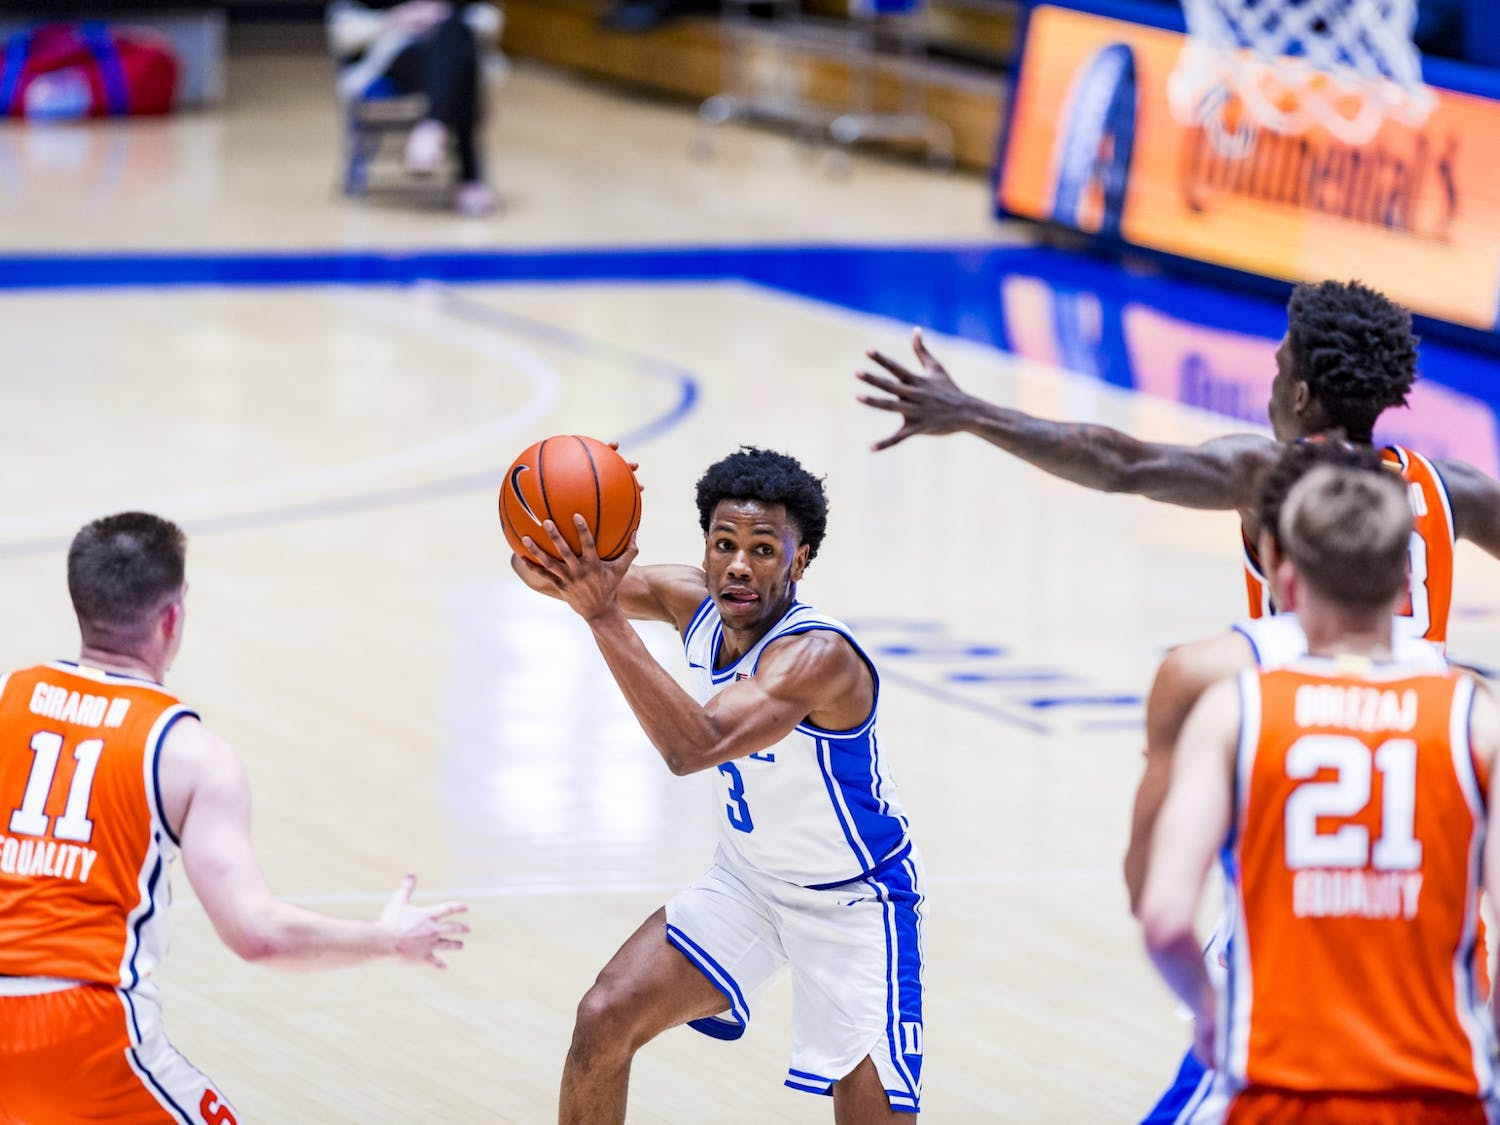 Duke needs another well-rounded performance from Jeremy Roach when Louisville comes to town Saturday.